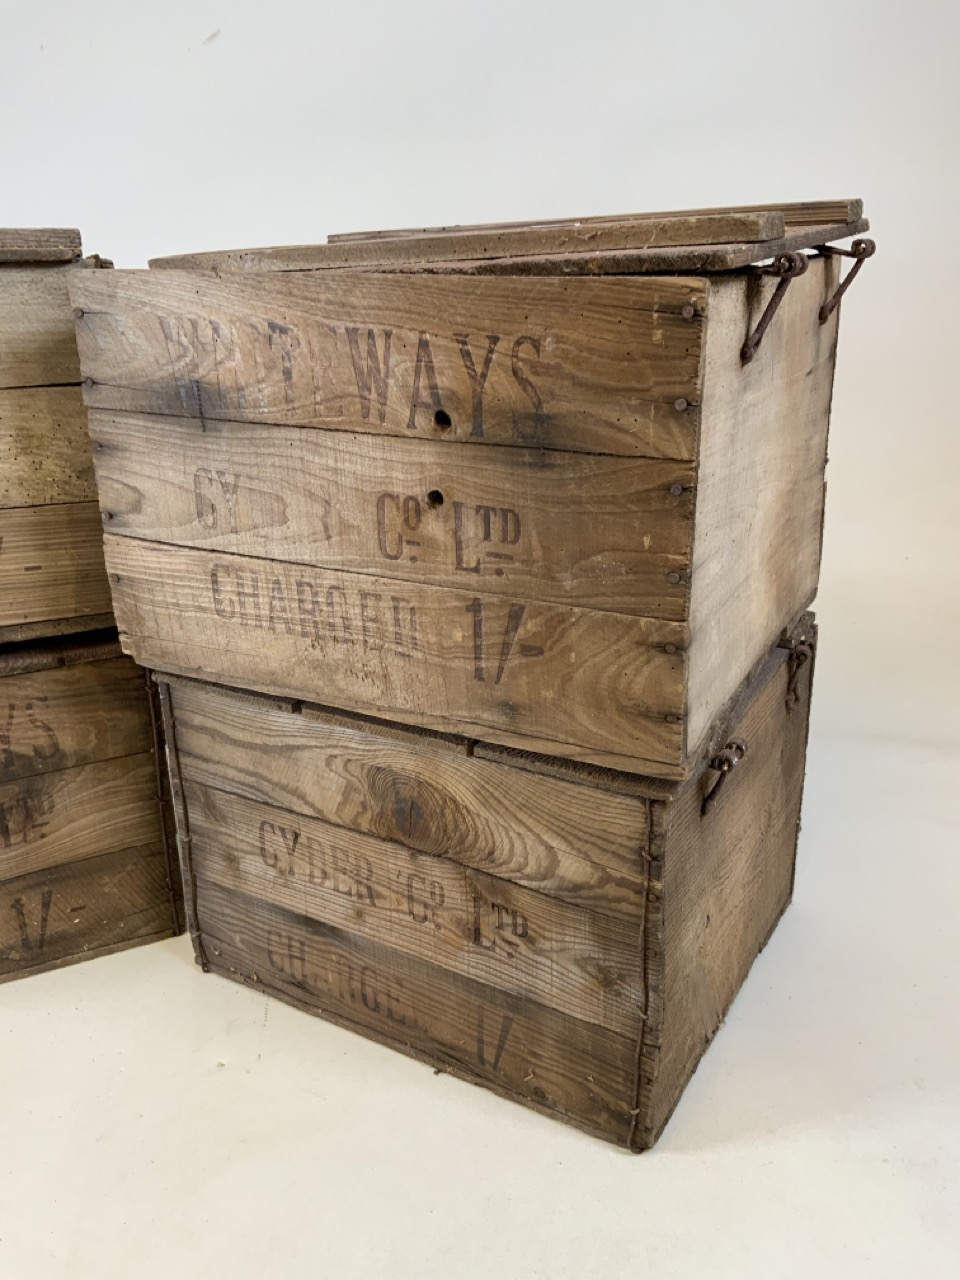 Four Whiteways Cyder Co ltd Cider boxes. From Whiteways, Hele, Exeter. W:32cm x D:39cm x H:28cm - Image 3 of 5